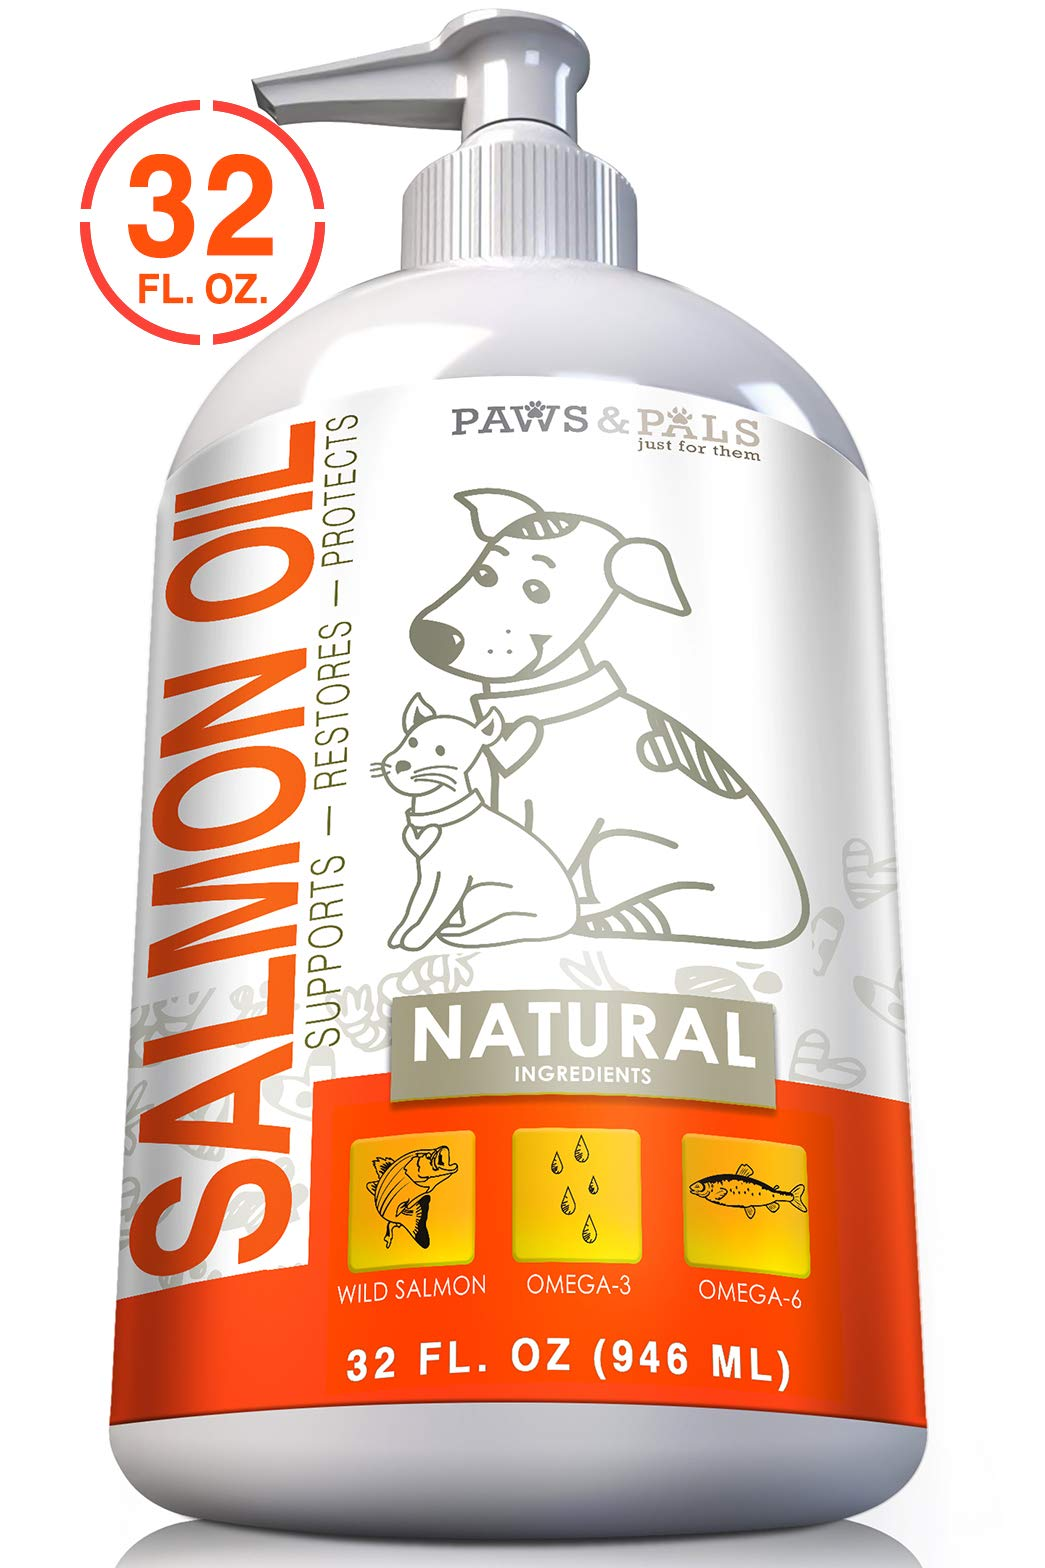 32oz Pure Wild-Alaskan Salmon Oil for Pets Omega 3 All Natural Fish Oil Liquid Food Supplement for Dogs & Cats -EPA & DHA Fatty Acids Supports Healthy Heart Restores Skin Protects Coat by Paws & Pals